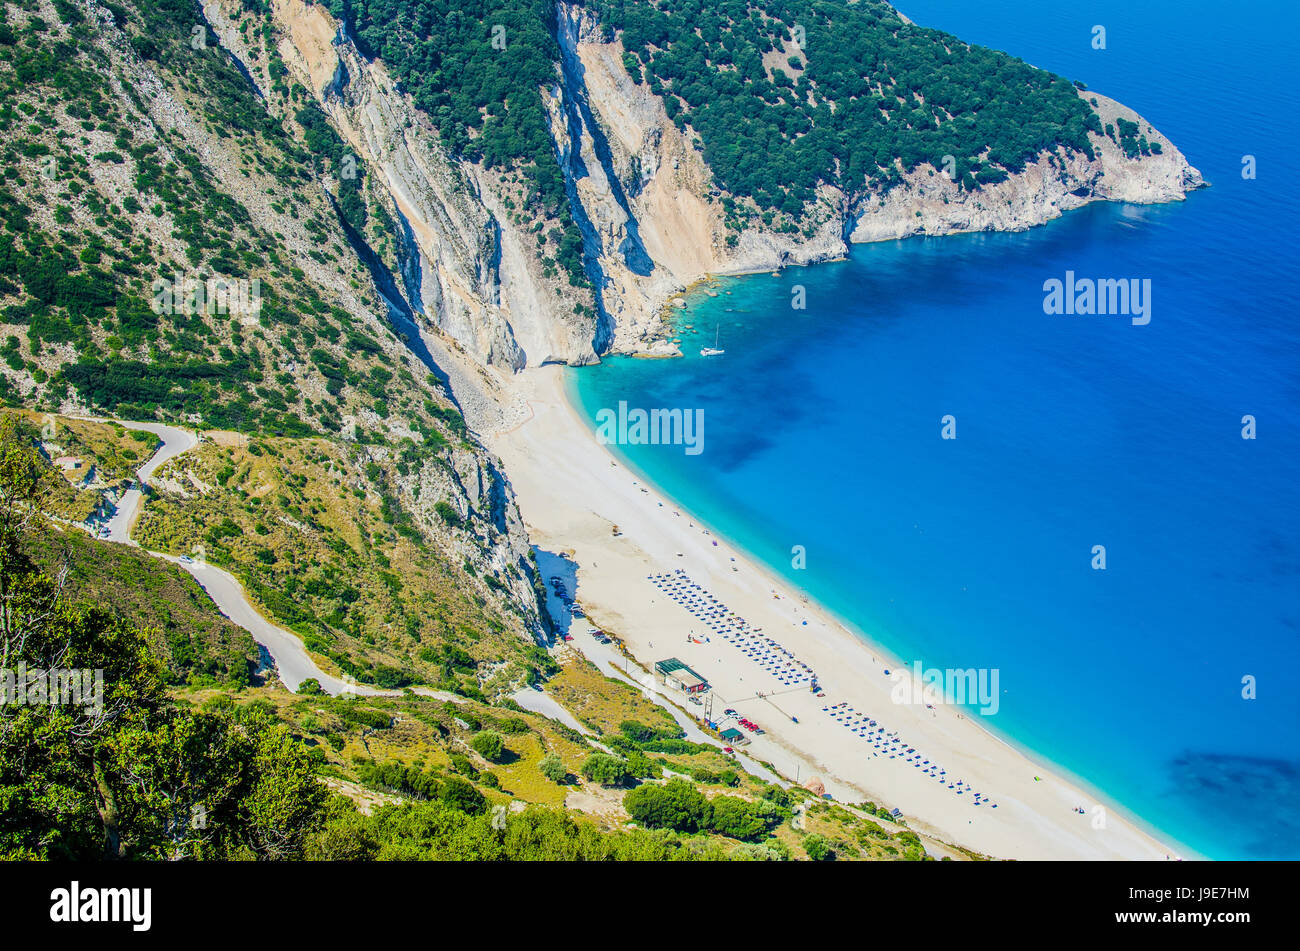 Aerial View of beautiful Myrtos Bay and Beach on Kefalonia Island, Greece - Stock Image